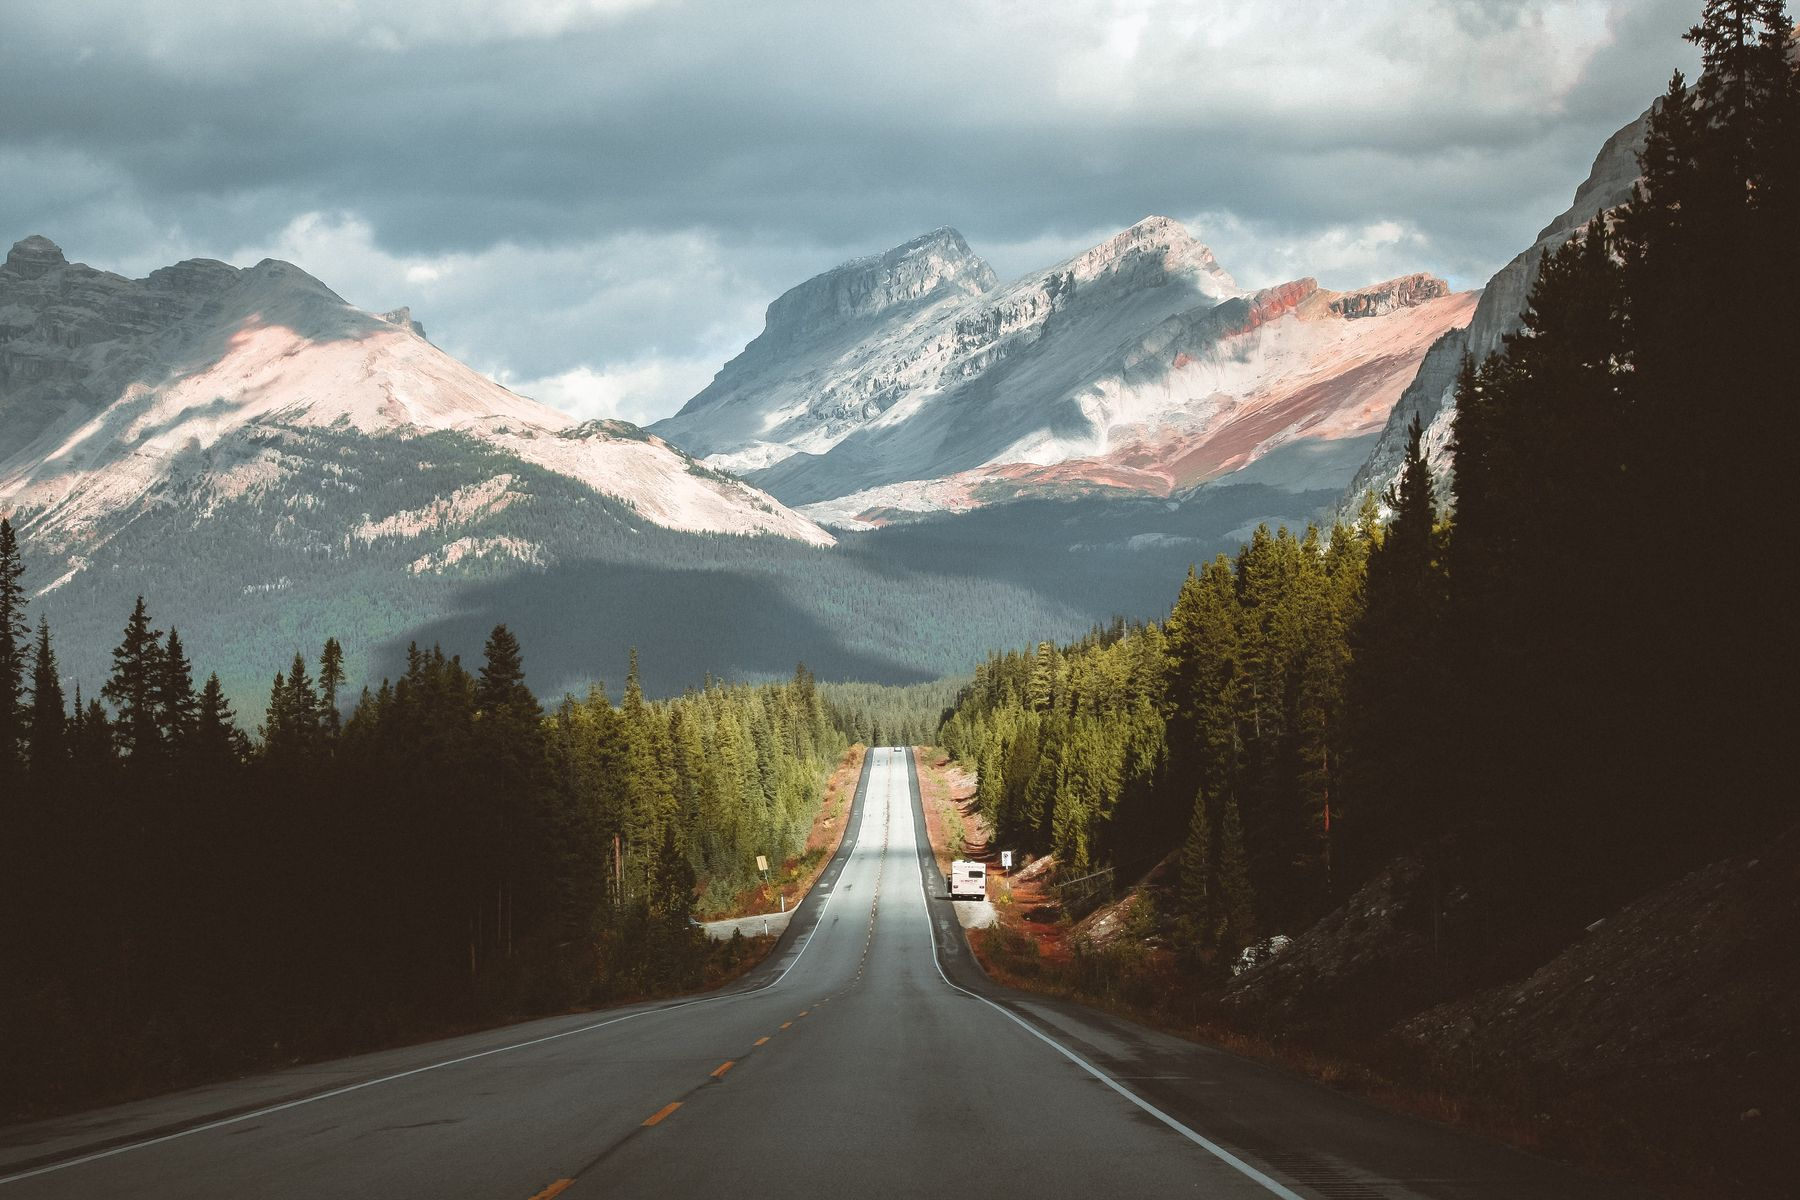 Open road through forests, heading to mountains, in Alberta Canada